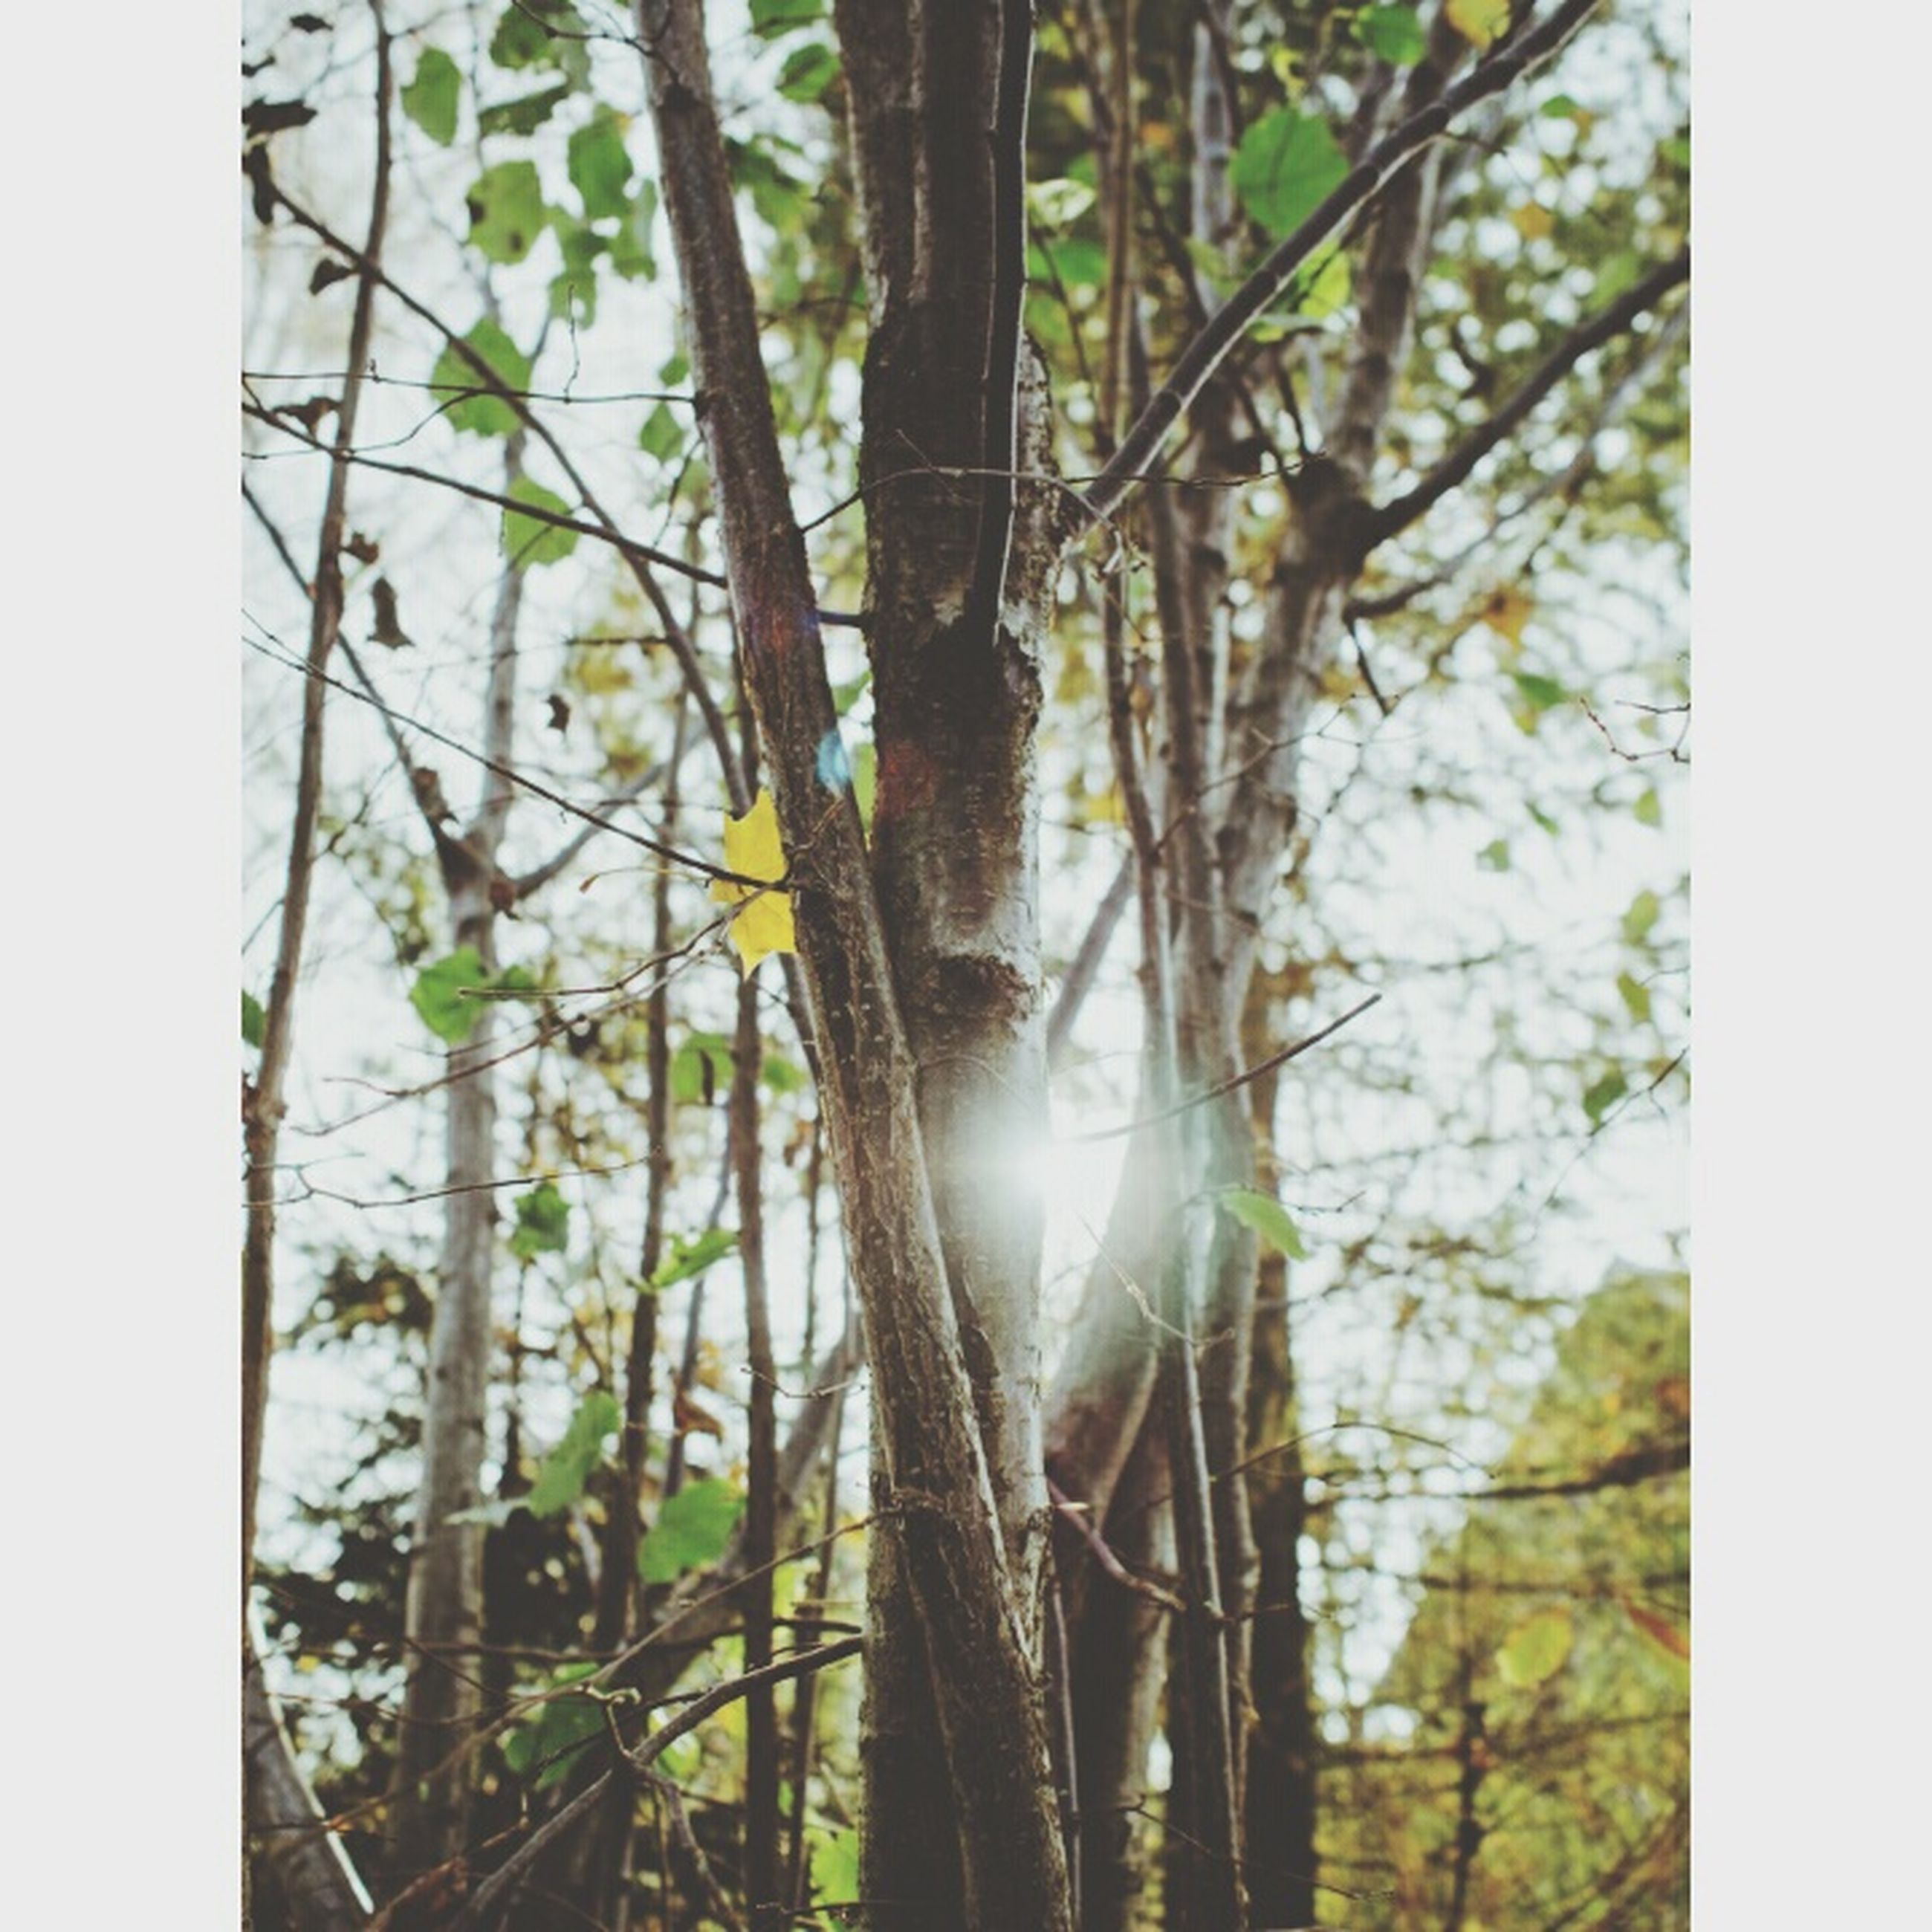 tree, transfer print, growth, tree trunk, auto post production filter, tranquility, branch, nature, forest, beauty in nature, plant, green color, day, sunlight, tranquil scene, scenics, outdoors, leaf, no people, water